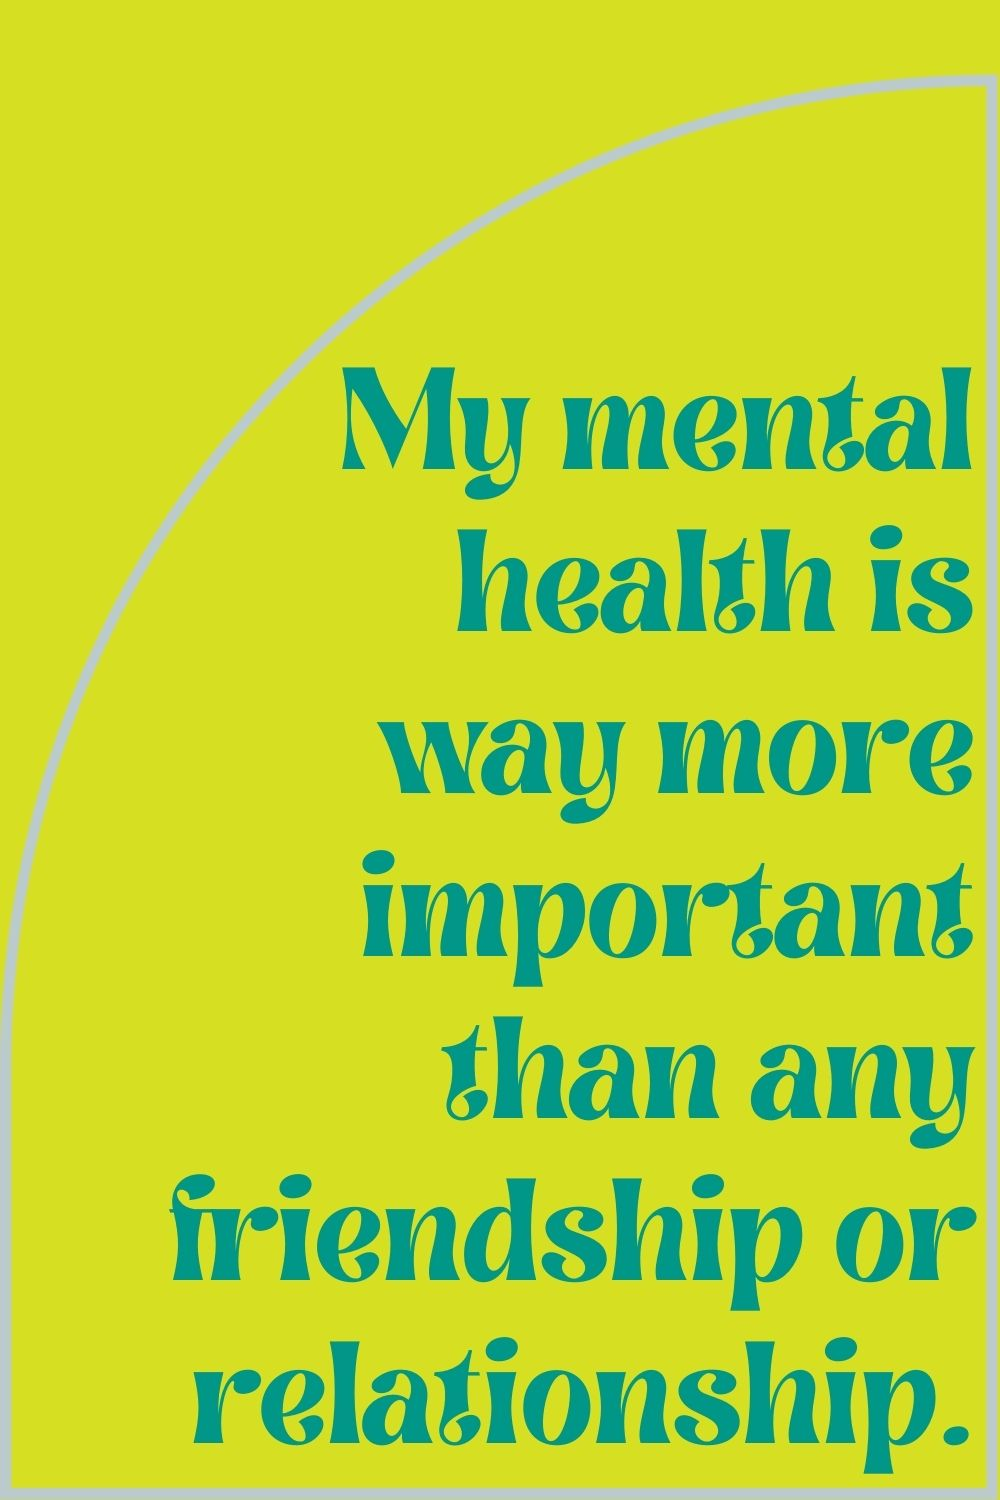 metal health quotes about friendships